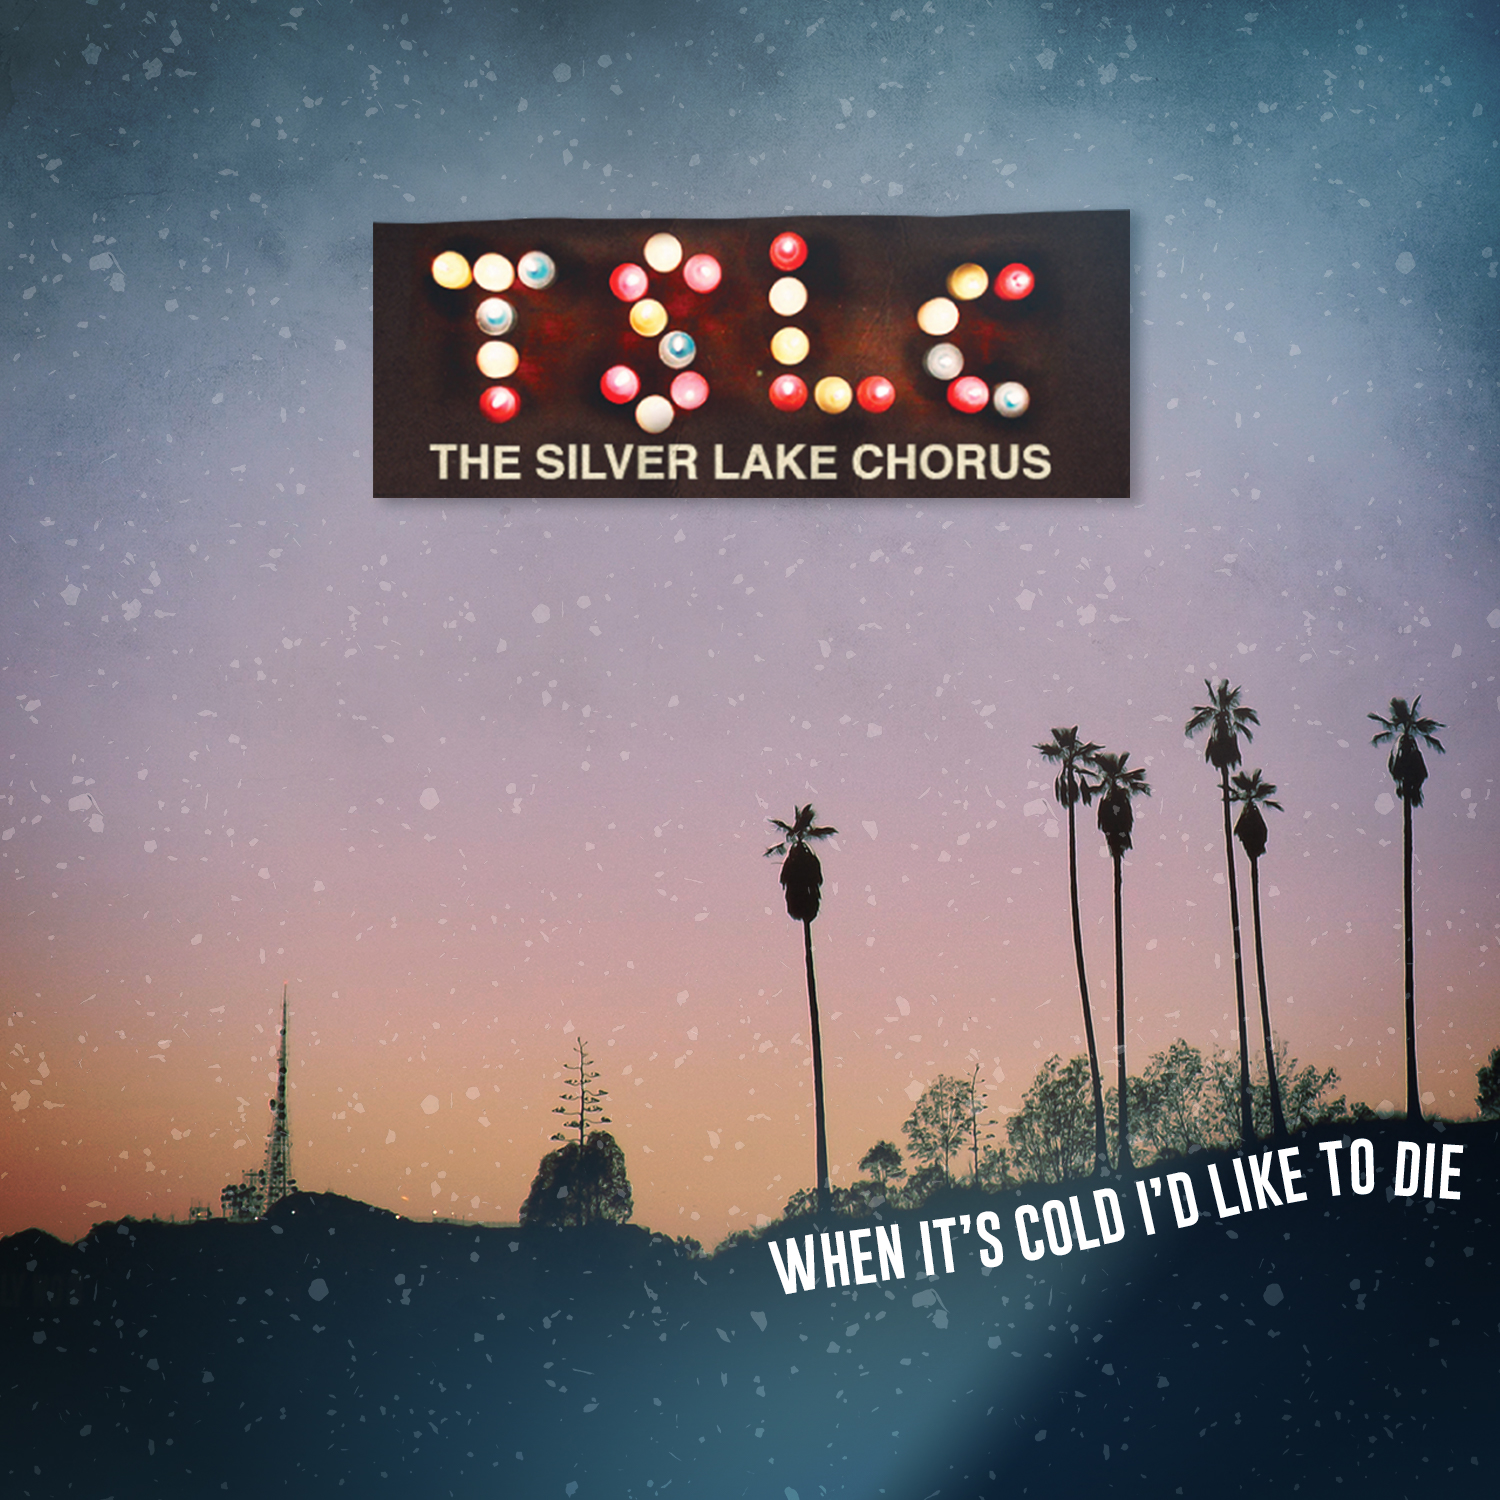 The Silver Lake Chorus – When It's Cold I'd Like To Die